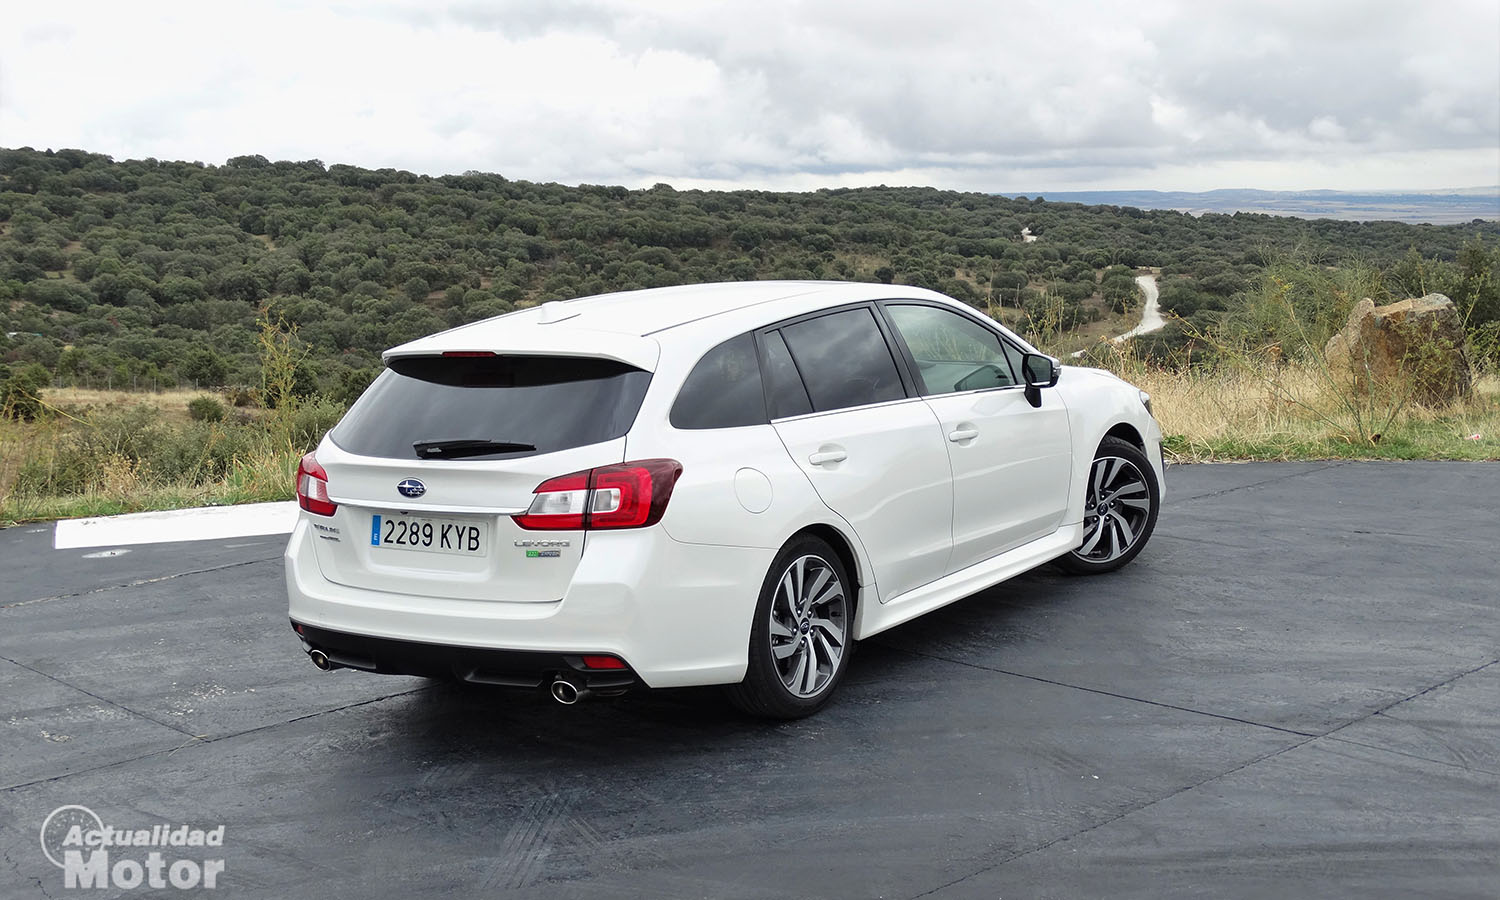 Subaru Levorg 2.0i 150 CV Executive Plus GLP 4x4